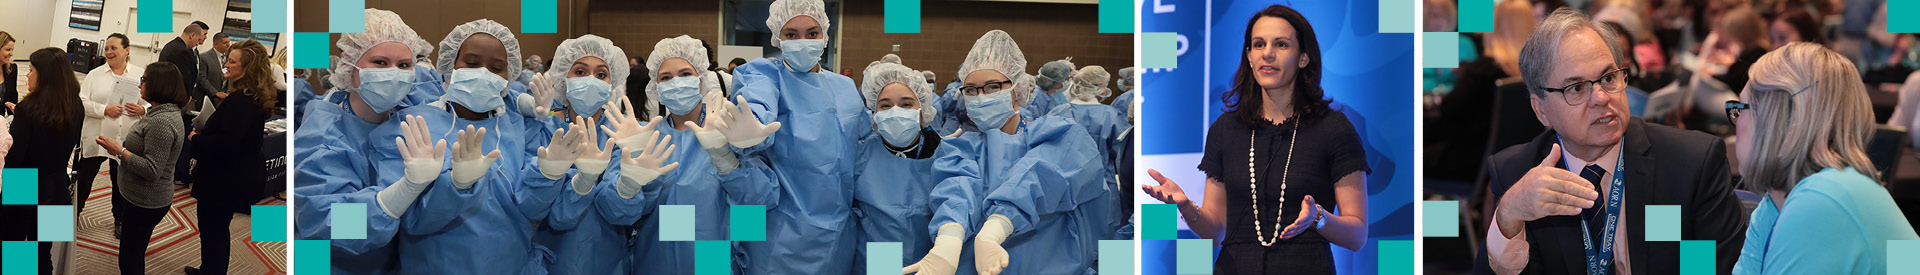 Montage of images from AORN Live events